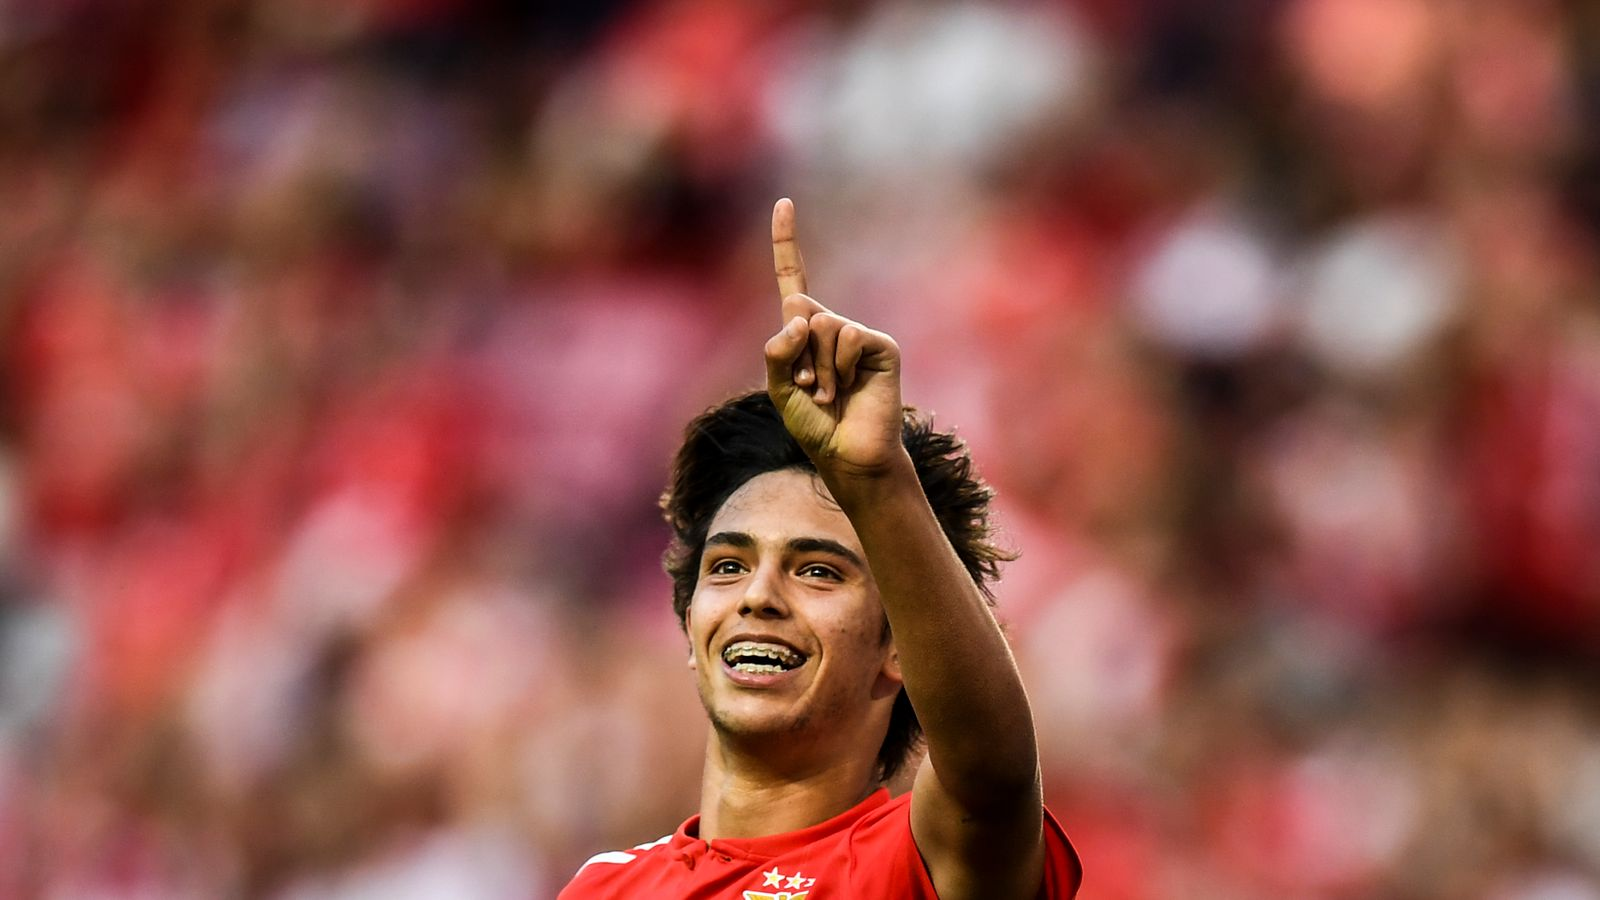 Joao Felix: Who Is Reported Manchester United Target